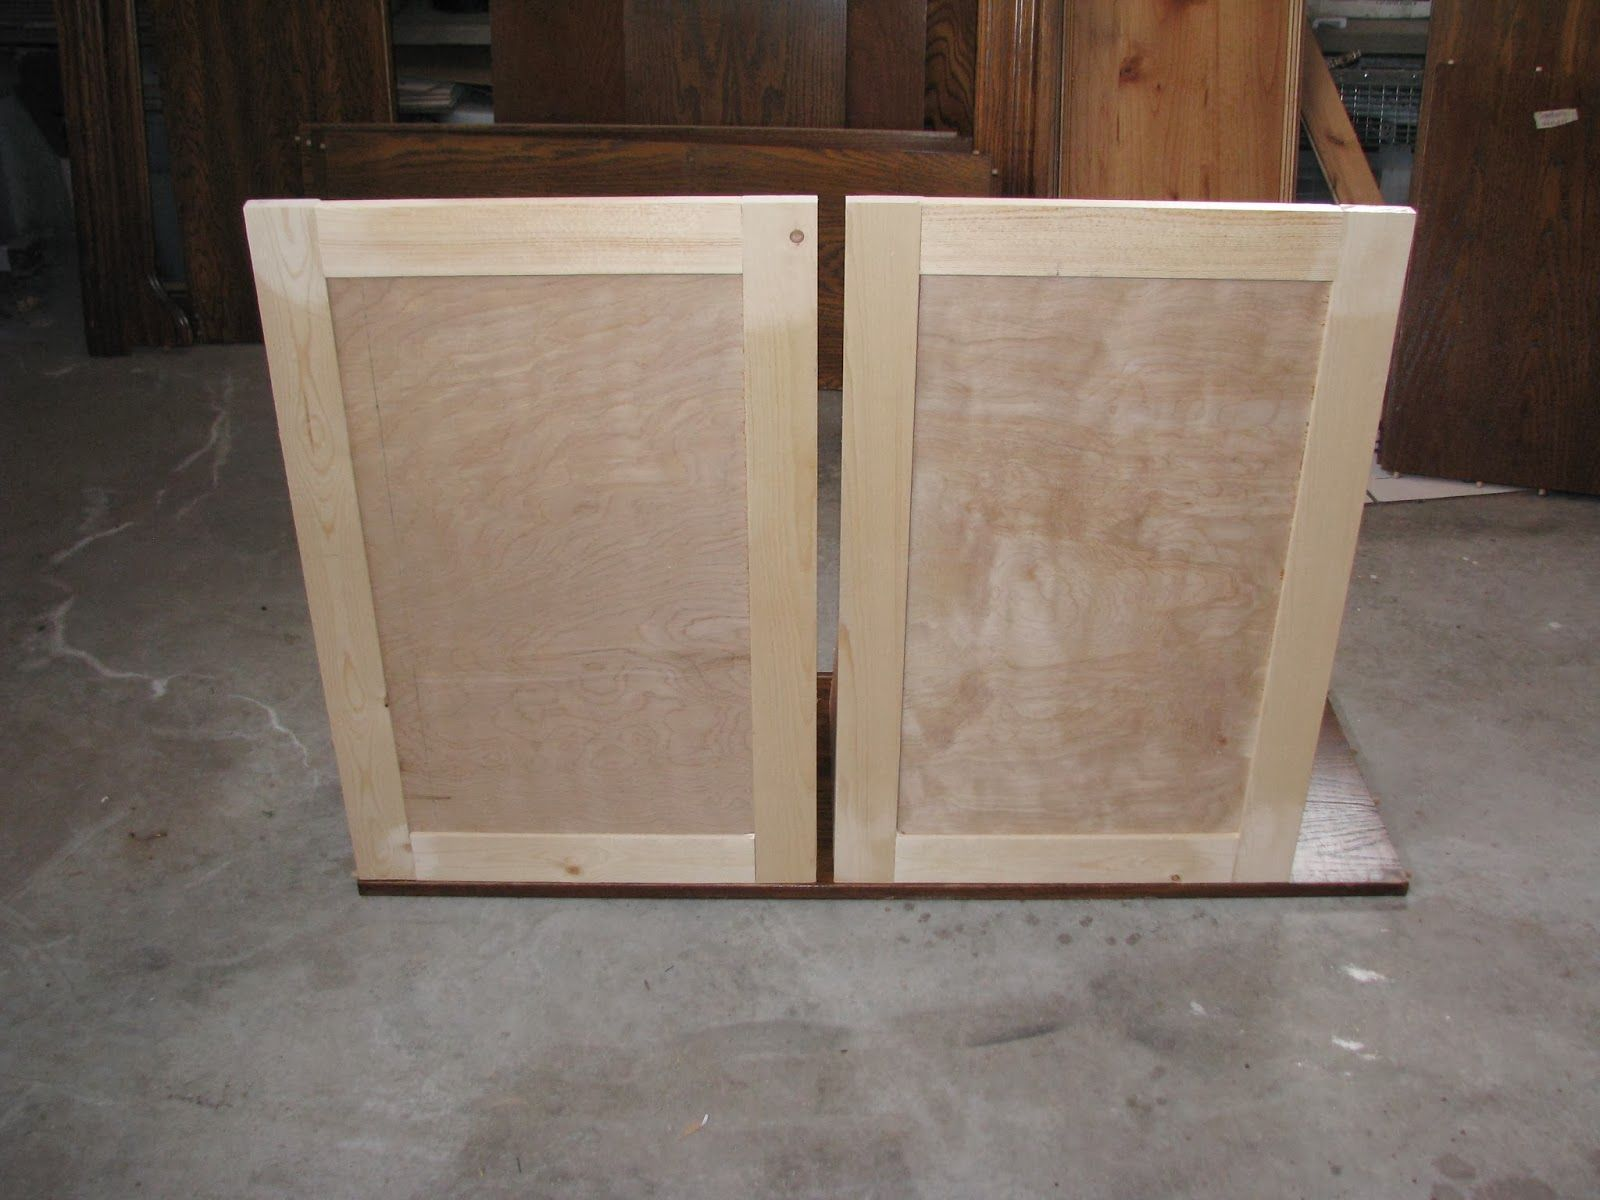 Cabinet Doors I Made These With 1 2 Birch Plywood For The Middle And 1x3s For The Frame Making Cabinet Doors Cost Of Kitchen Cabinets Simple Kitchen Remodel